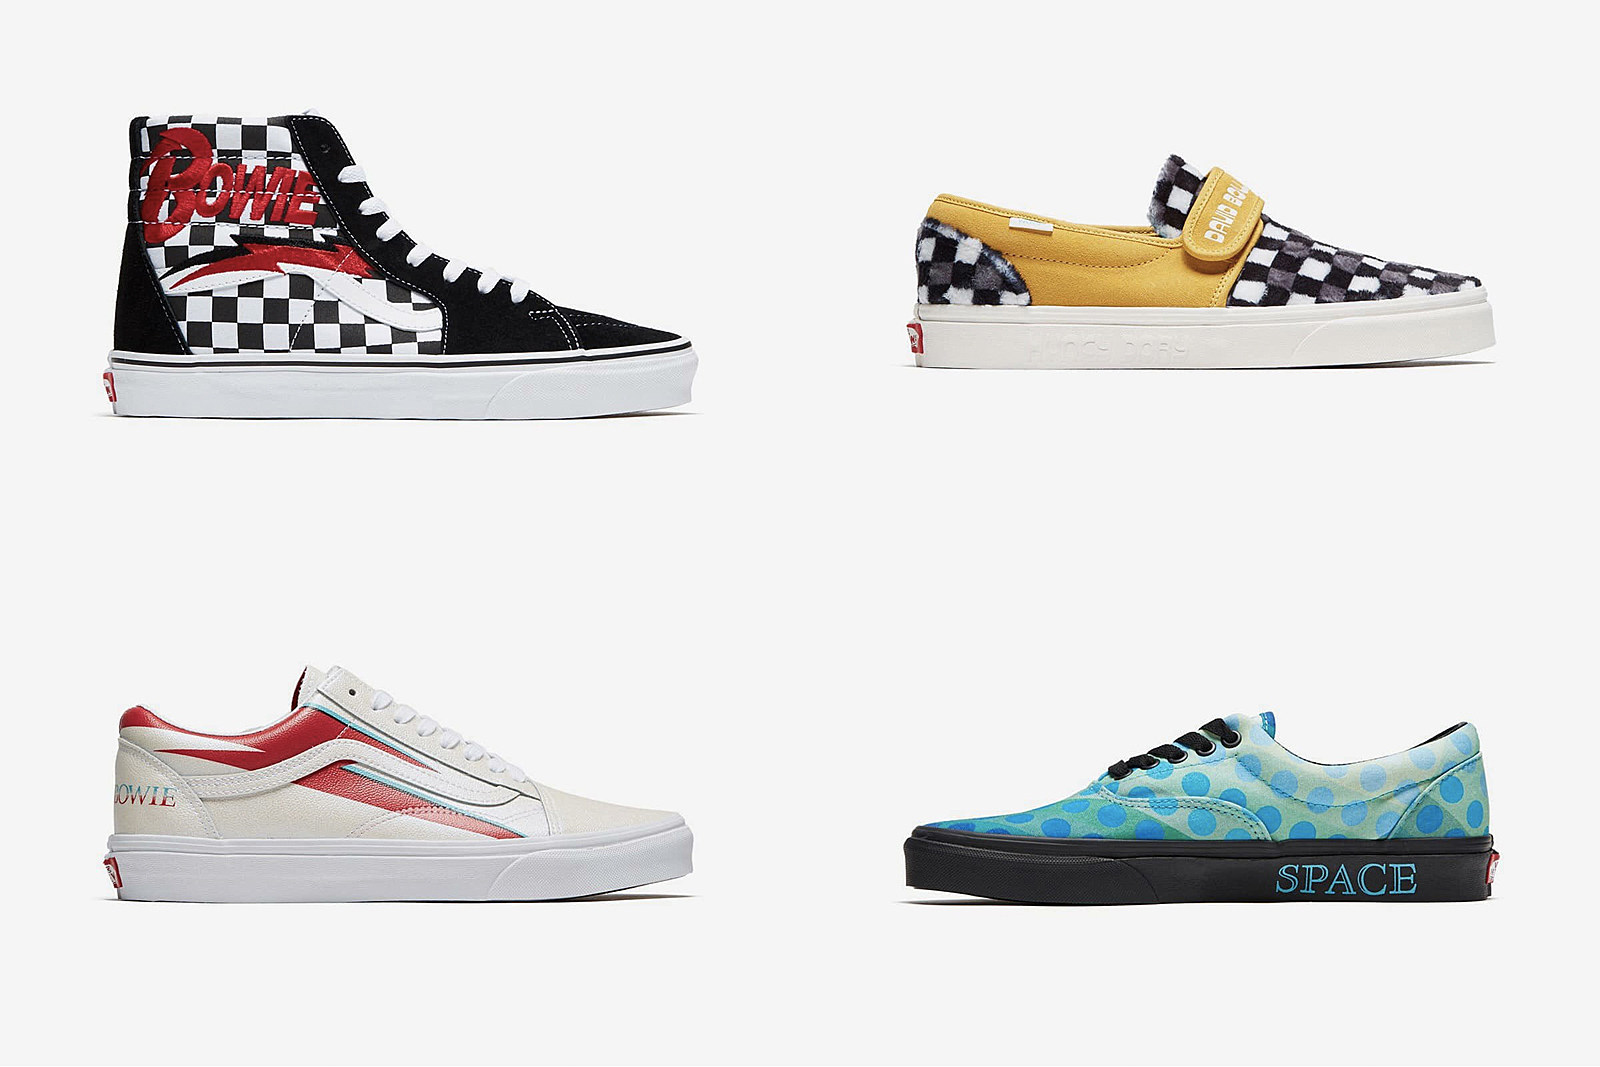 e94f31c311f Vans to Release David Bowie-Themed Sneakers